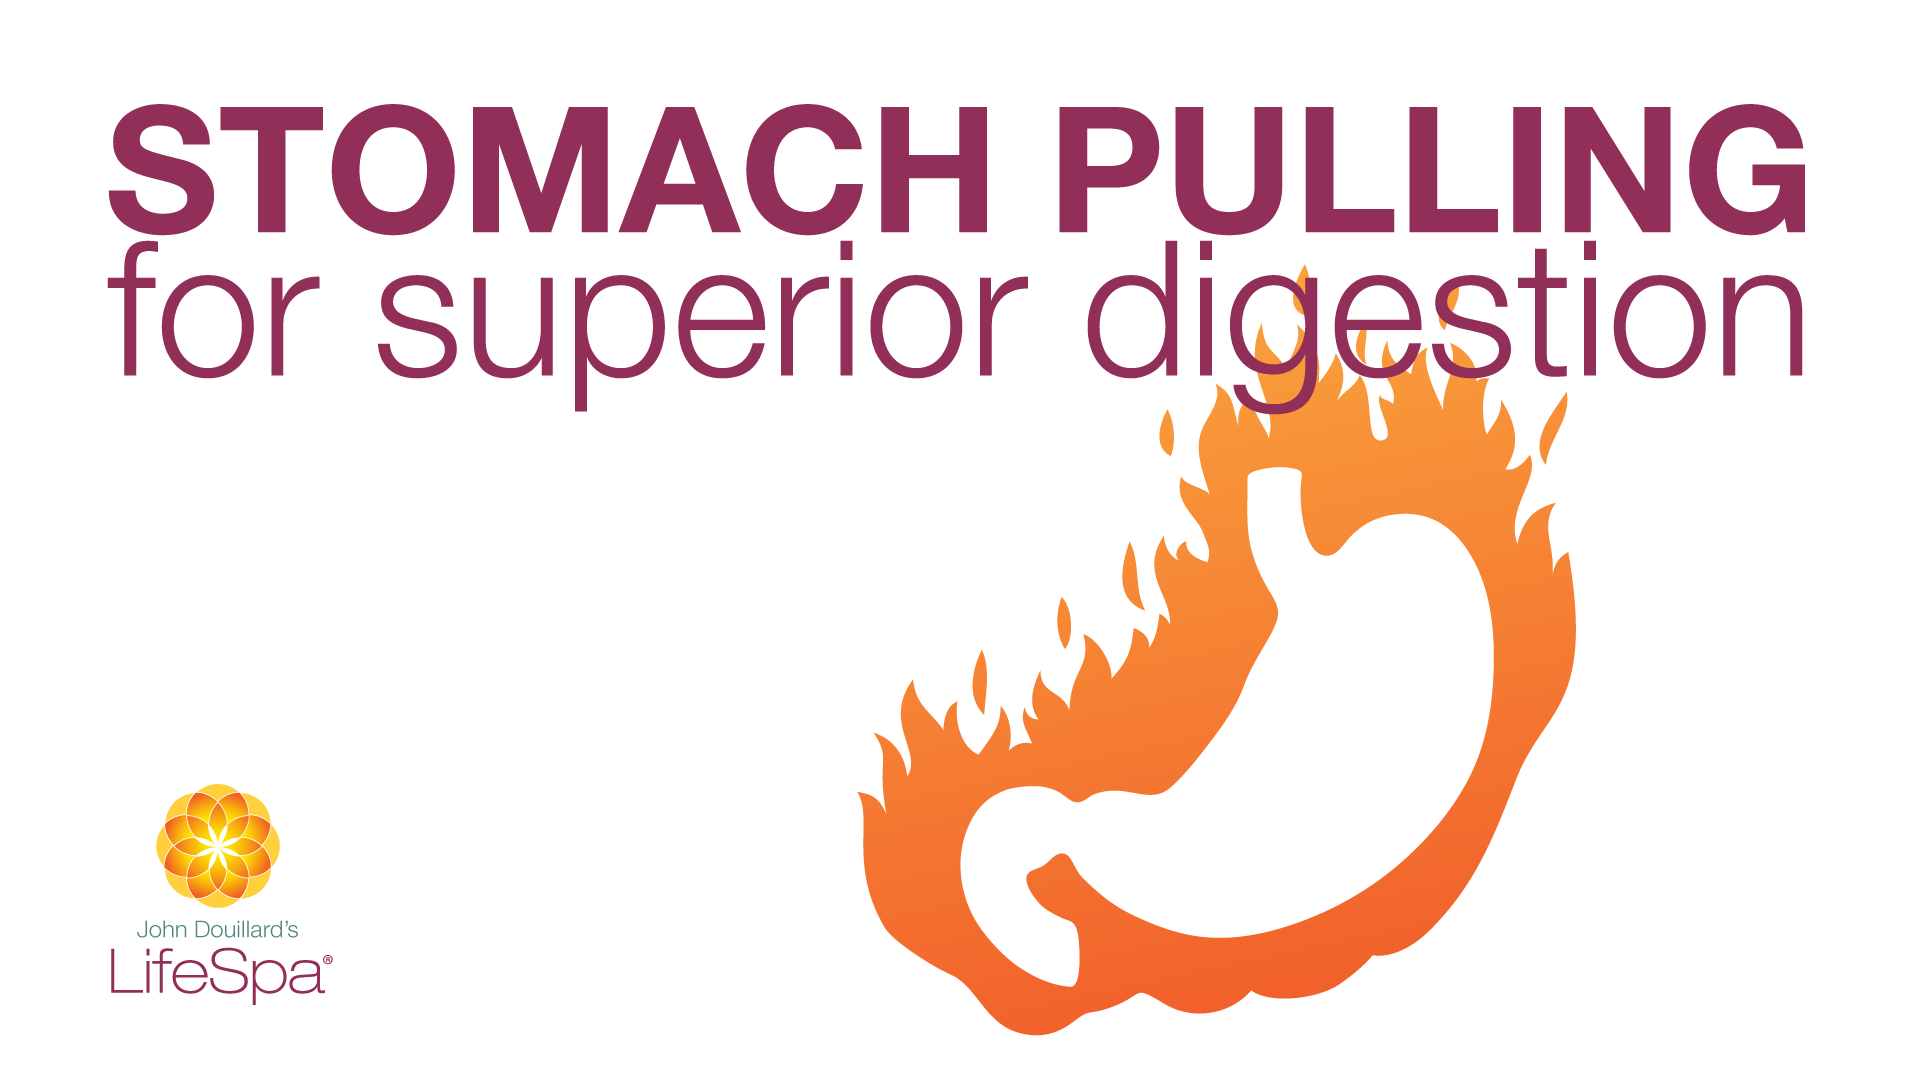 Stomach Pulling for Superior Digestion